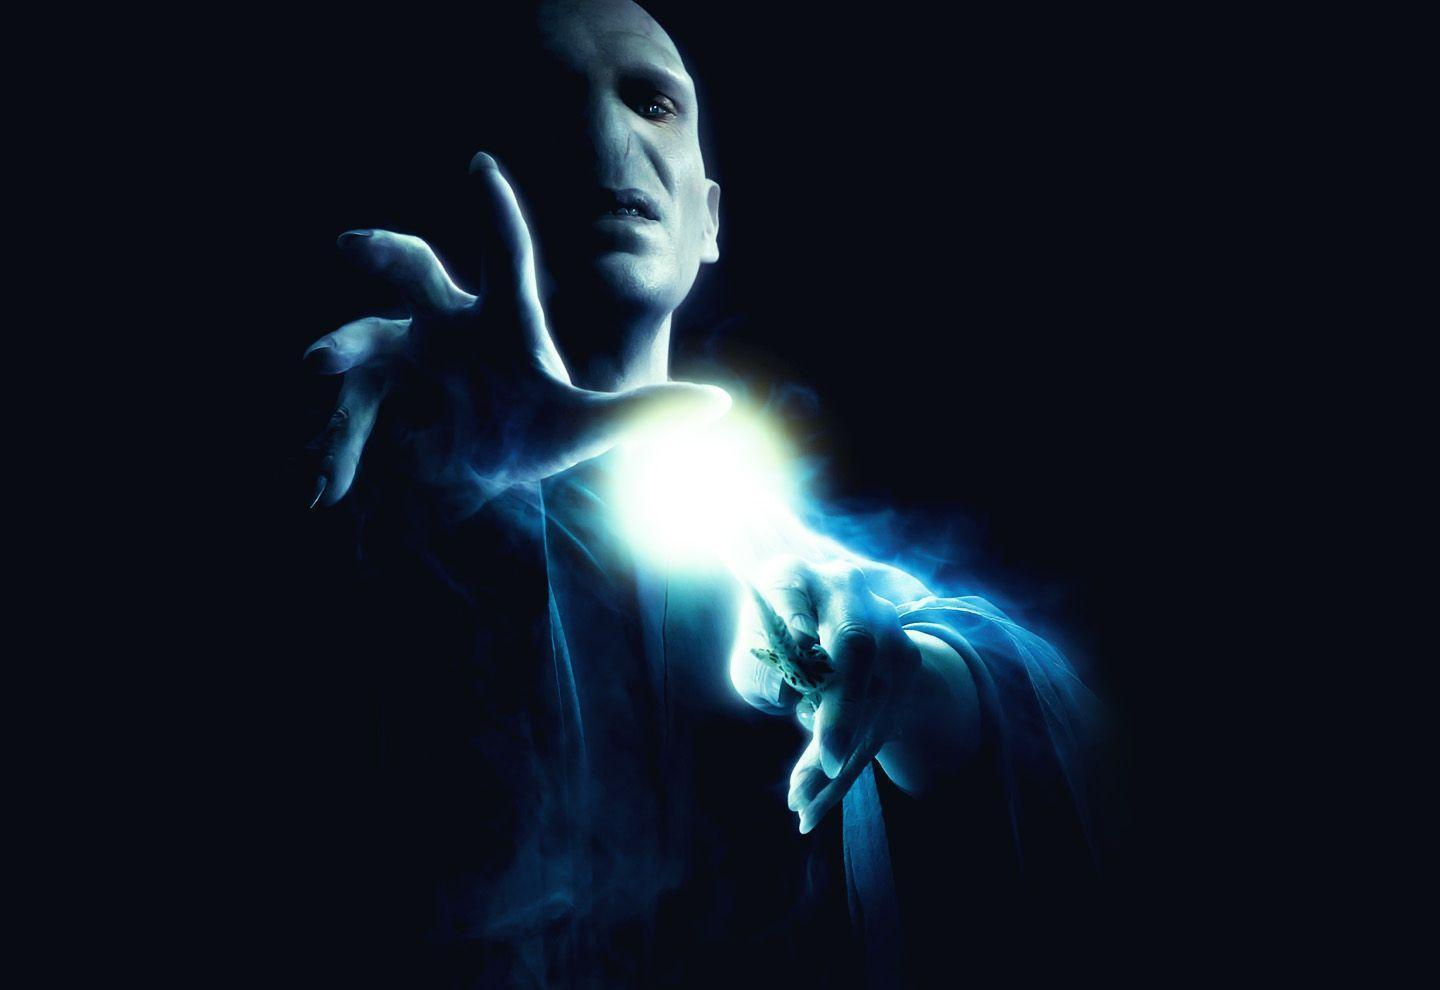 lord voldemort wallpapers - wallpaper cave